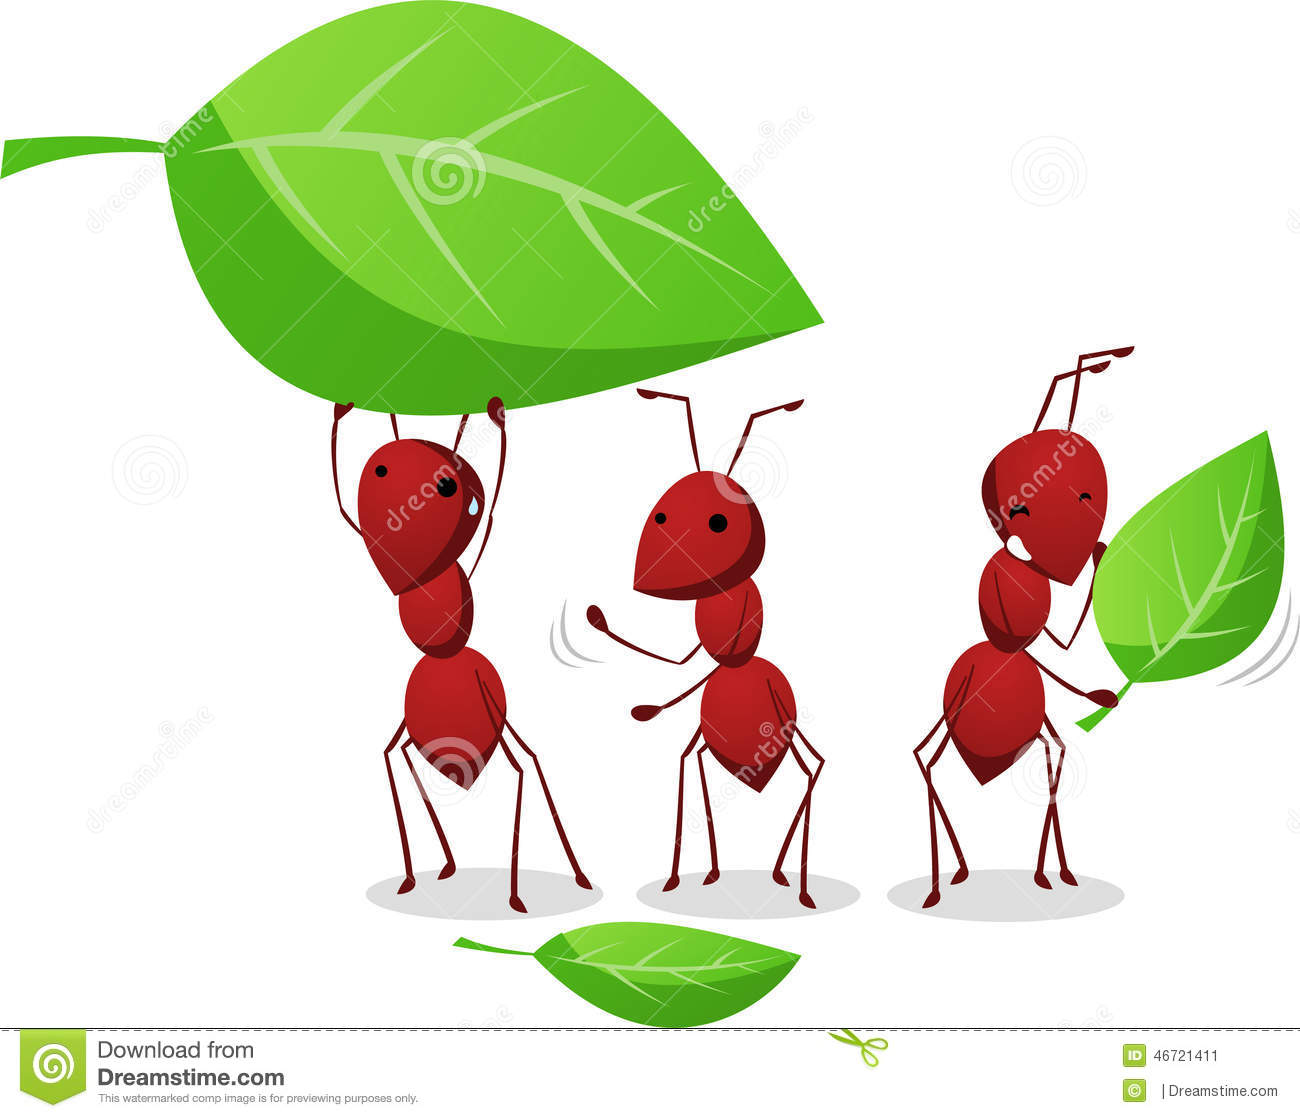 Ant nest clipart clip royalty free library Ants Nest Clipart & Free Clip Art Images #1824 - Clipartimage.com clip royalty free library